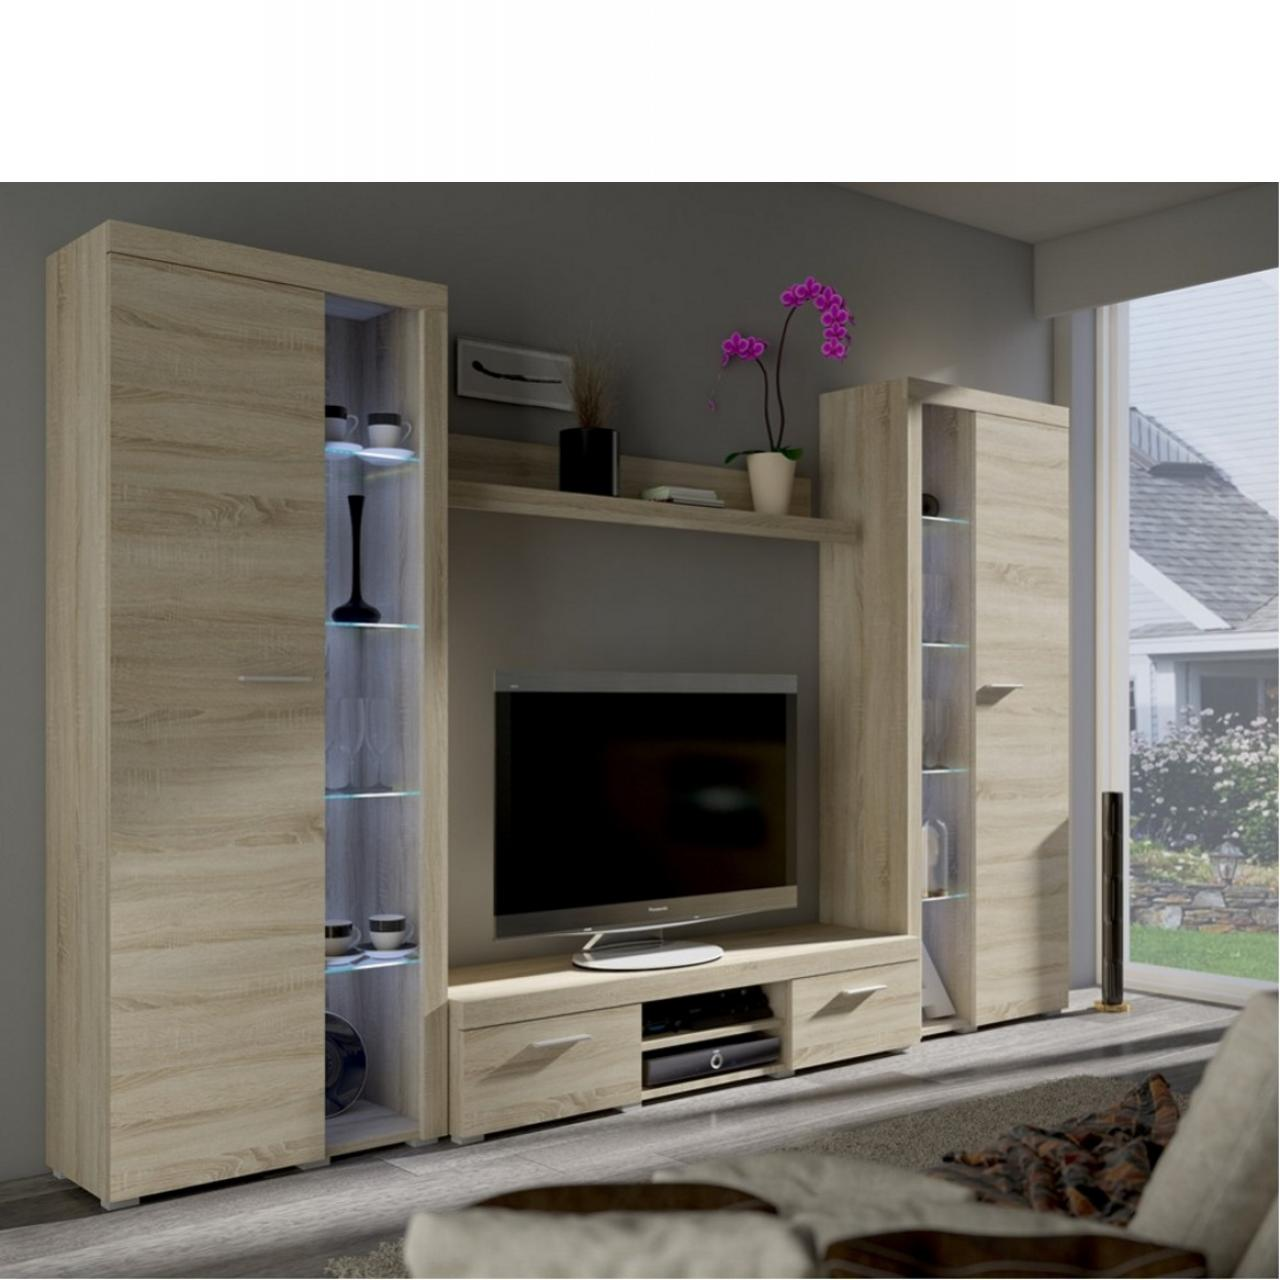 wohnwand rumca xl wohnw nde wohnen m bel j hnichen center gmbh. Black Bedroom Furniture Sets. Home Design Ideas